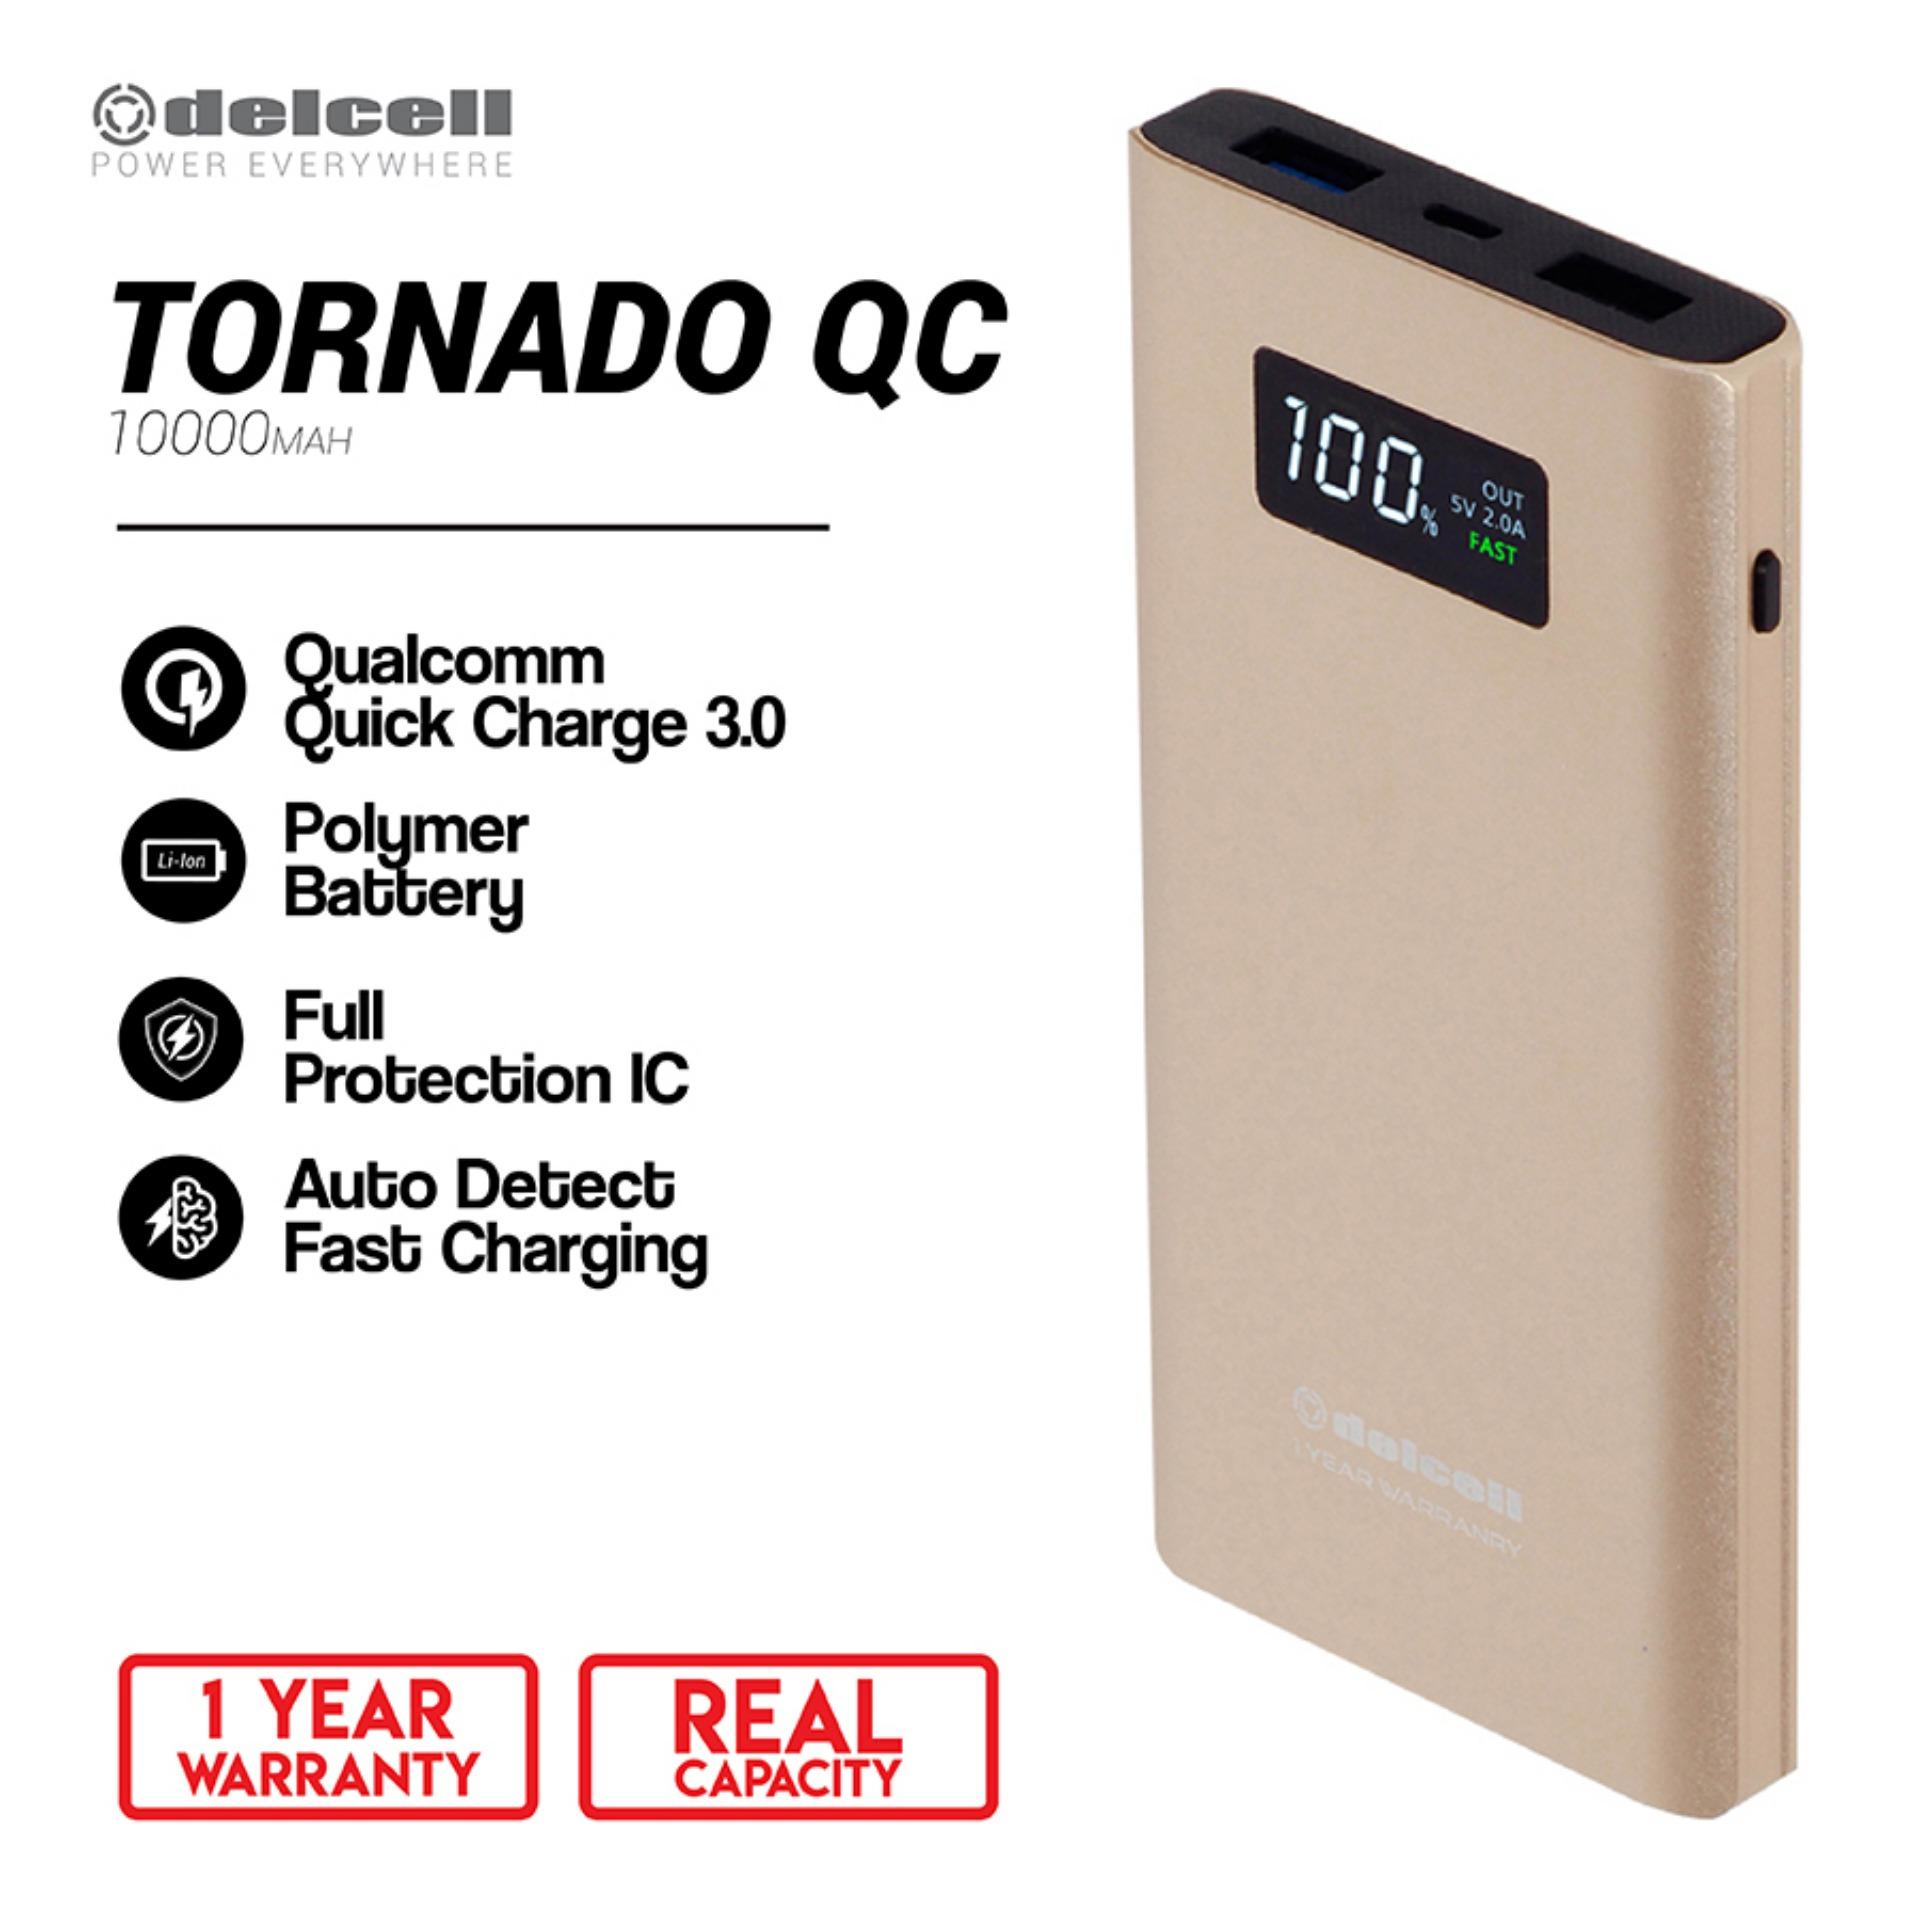 Delcell 10000mAh Powerbank TORNADO  Support Quick Charge 3.0A Real Capacity Garansi Resmi 1 Tahun Polymer Battery Power Bank Berkualitas - Gold